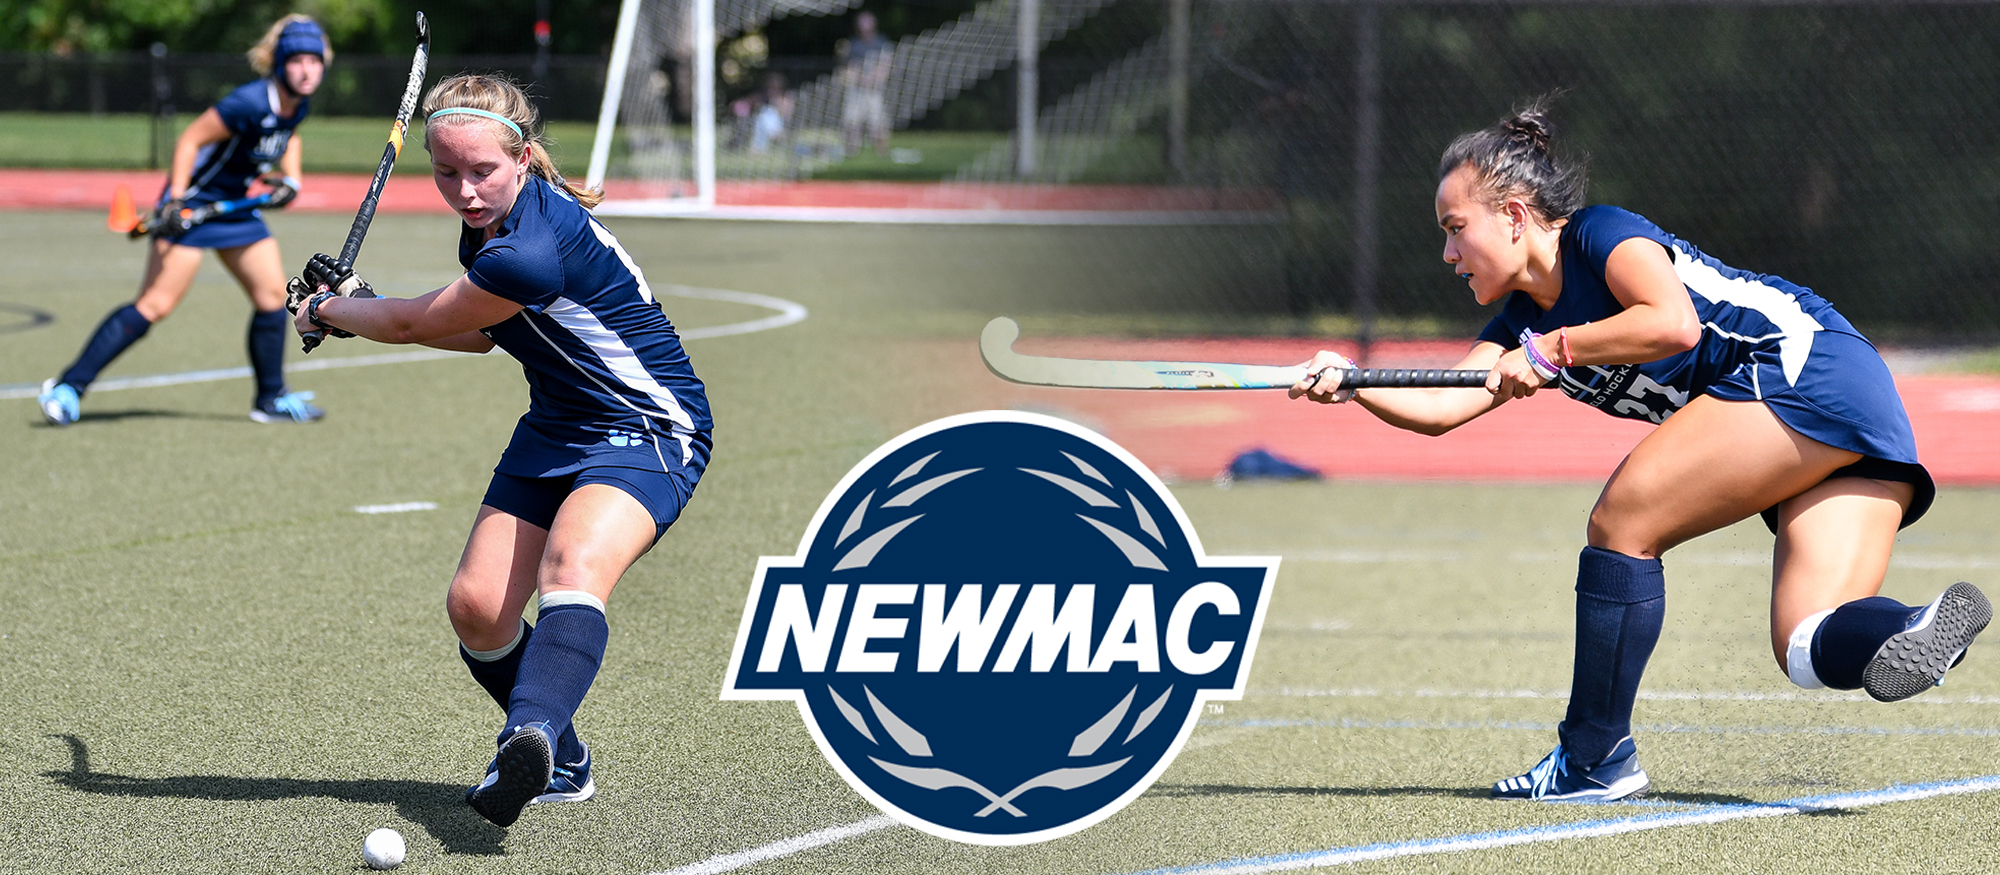 Aaronson and Golding-Powers Collect NEWMAC Field Hockey All-Conference Honors